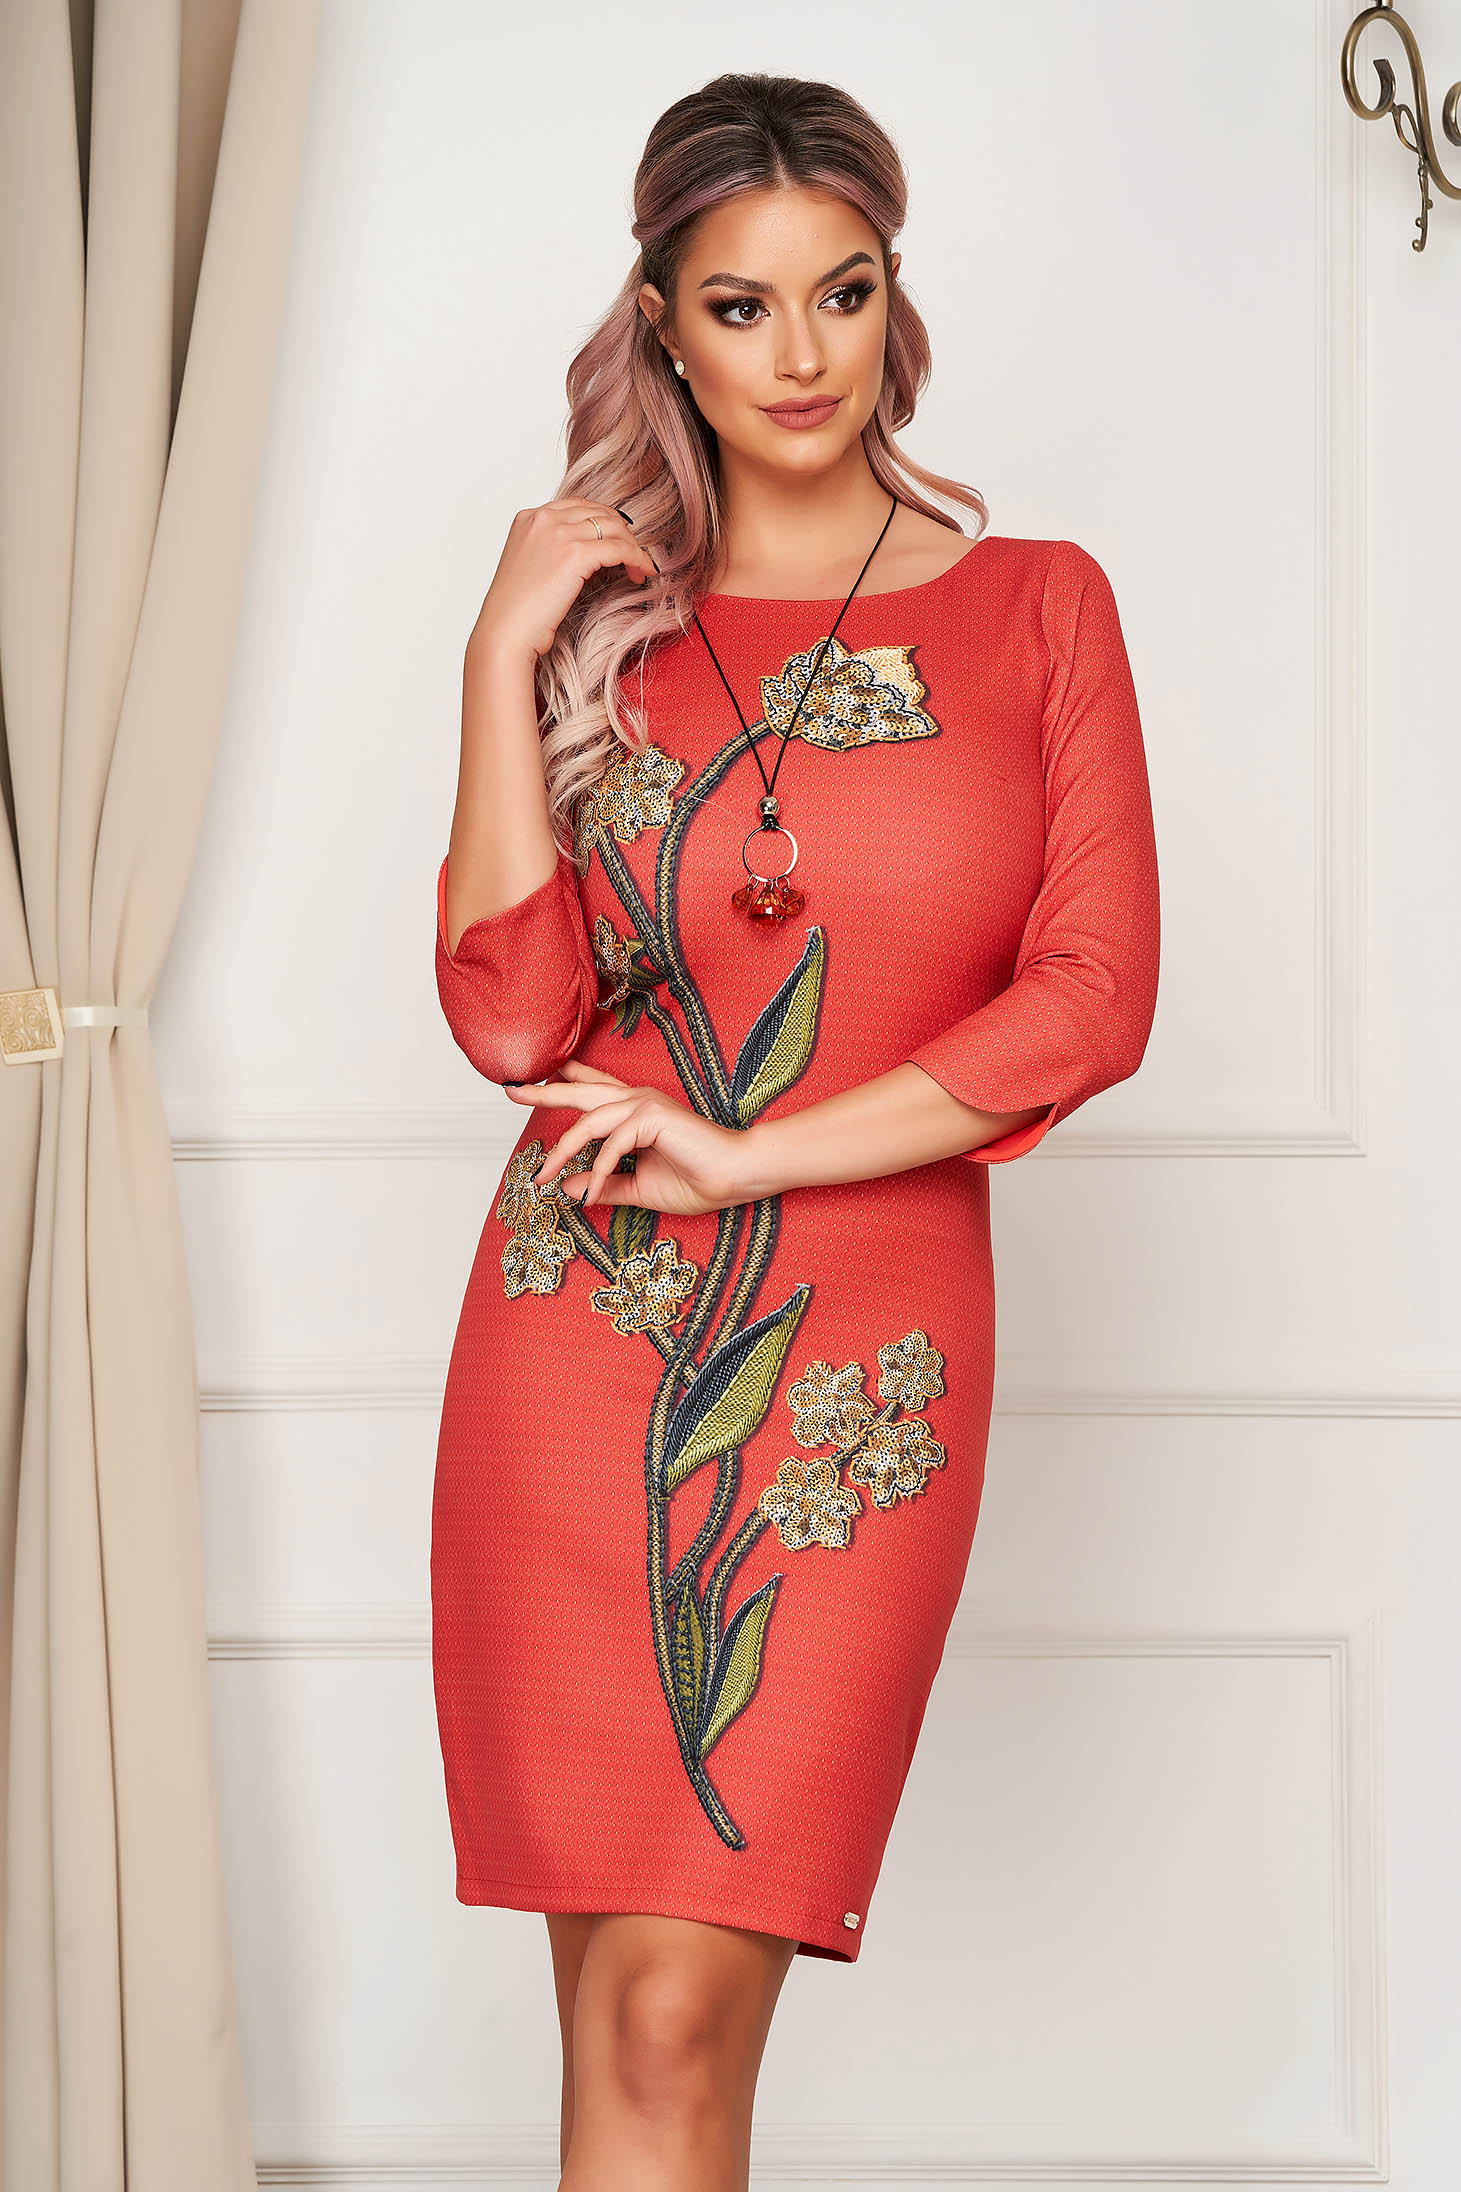 Daily red dress arched cut slightly elastic fabric accesorised with necklace